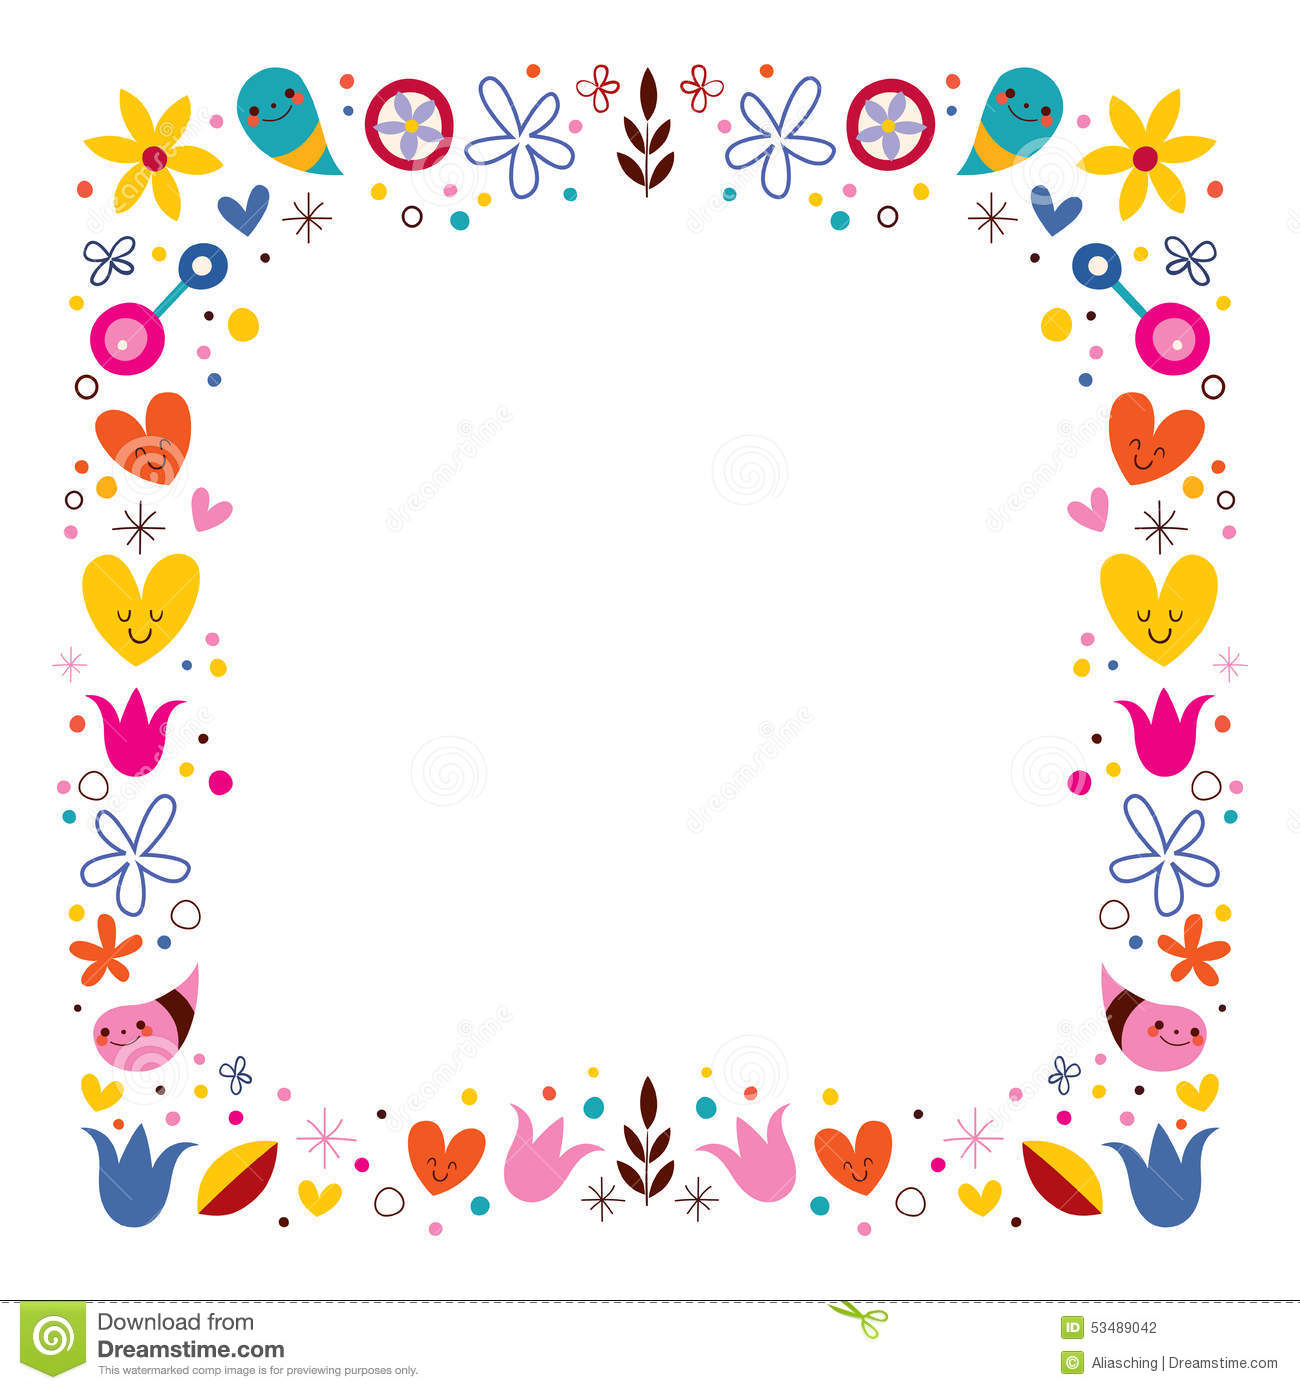 Cute Science Wallpaper Nature Love Harmony Flowers Abstract Art Vector Frame